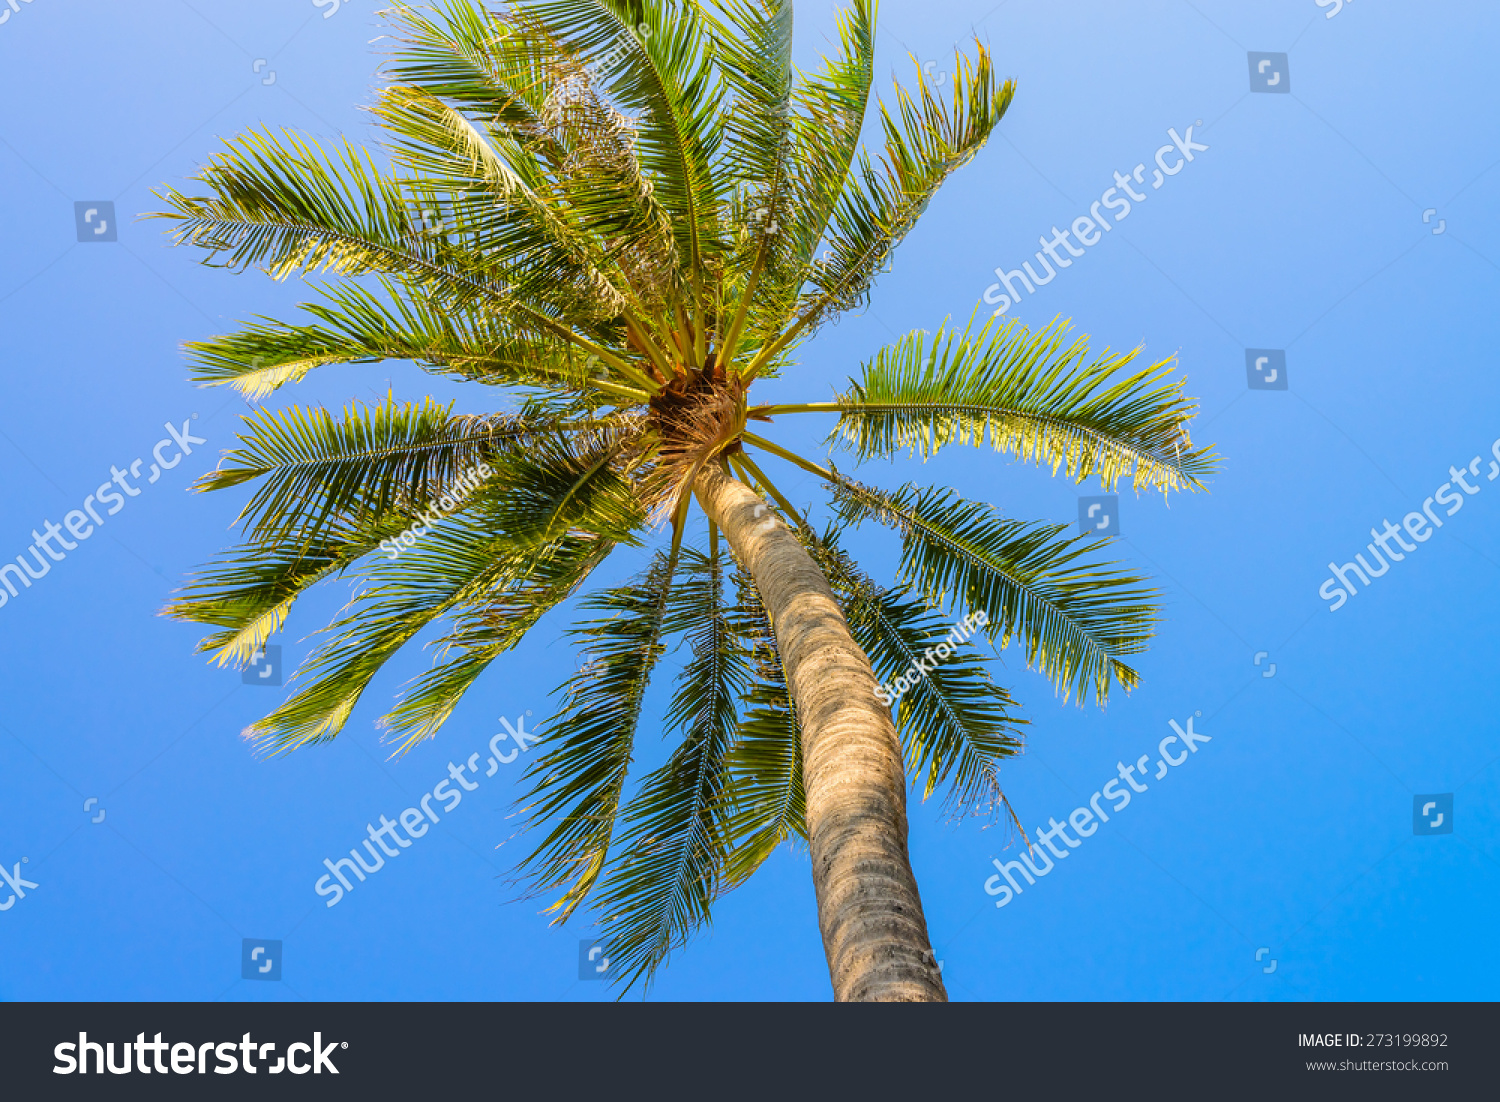 Palm Tree On Blue Sky Stock Photo 273199892 : Shutterstock